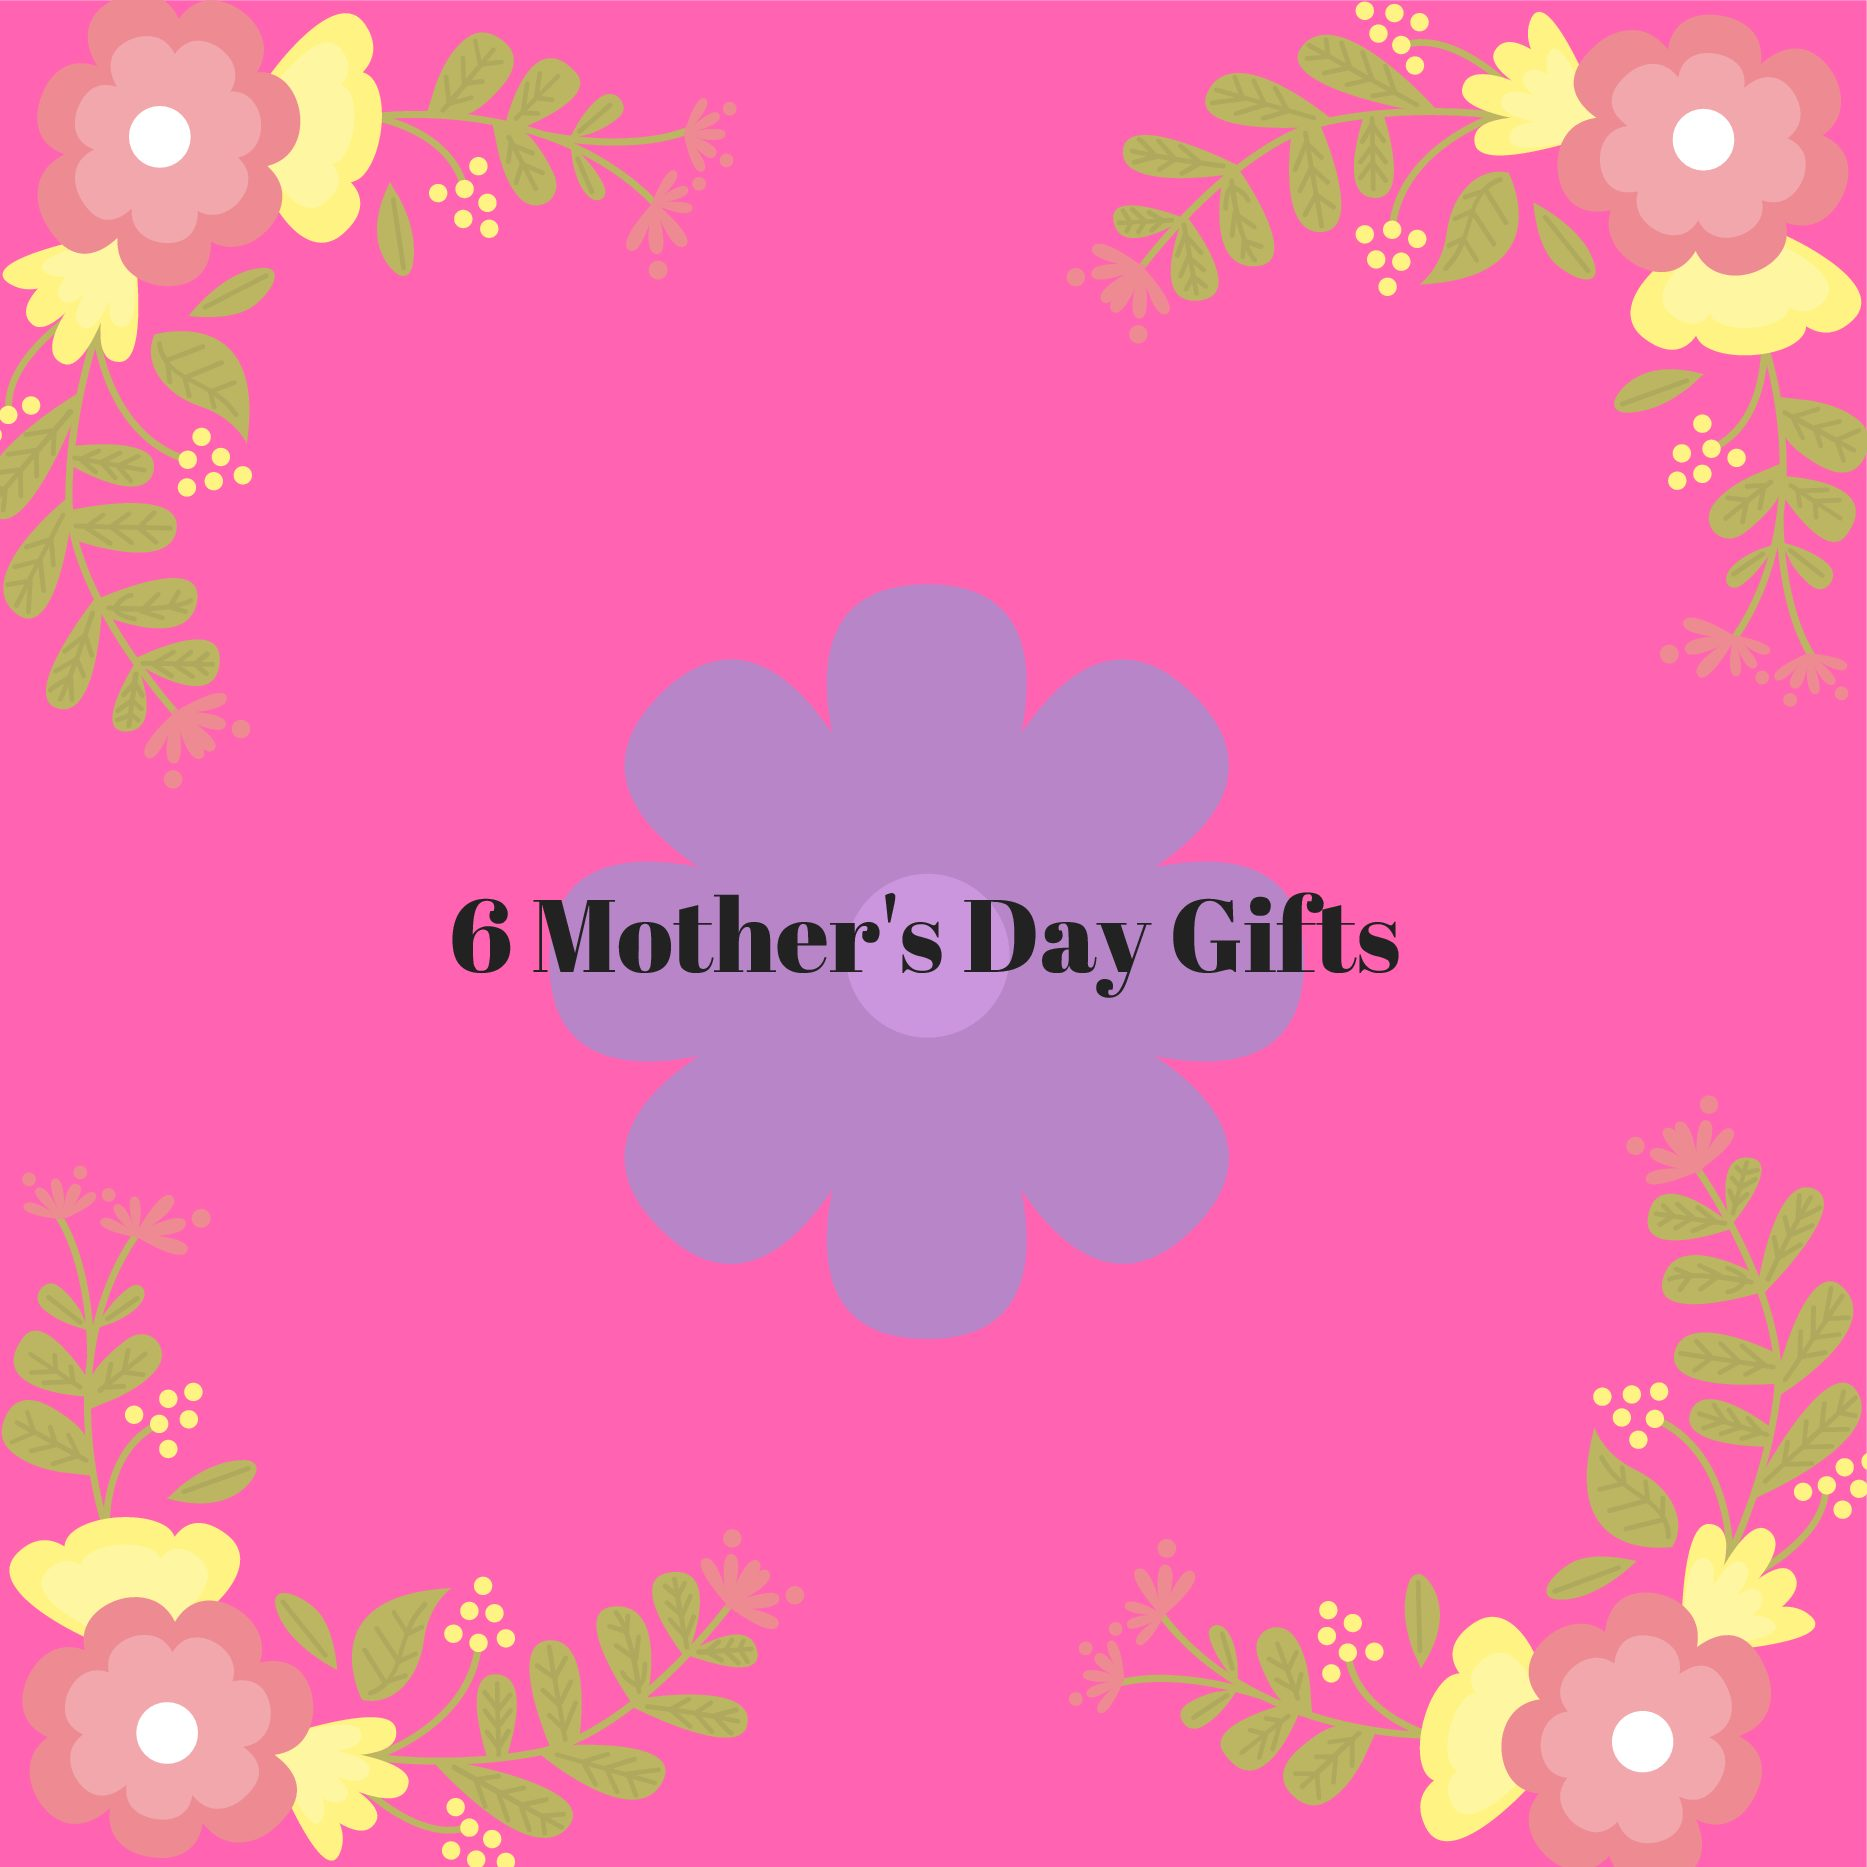 6 Mother's Day Gifts